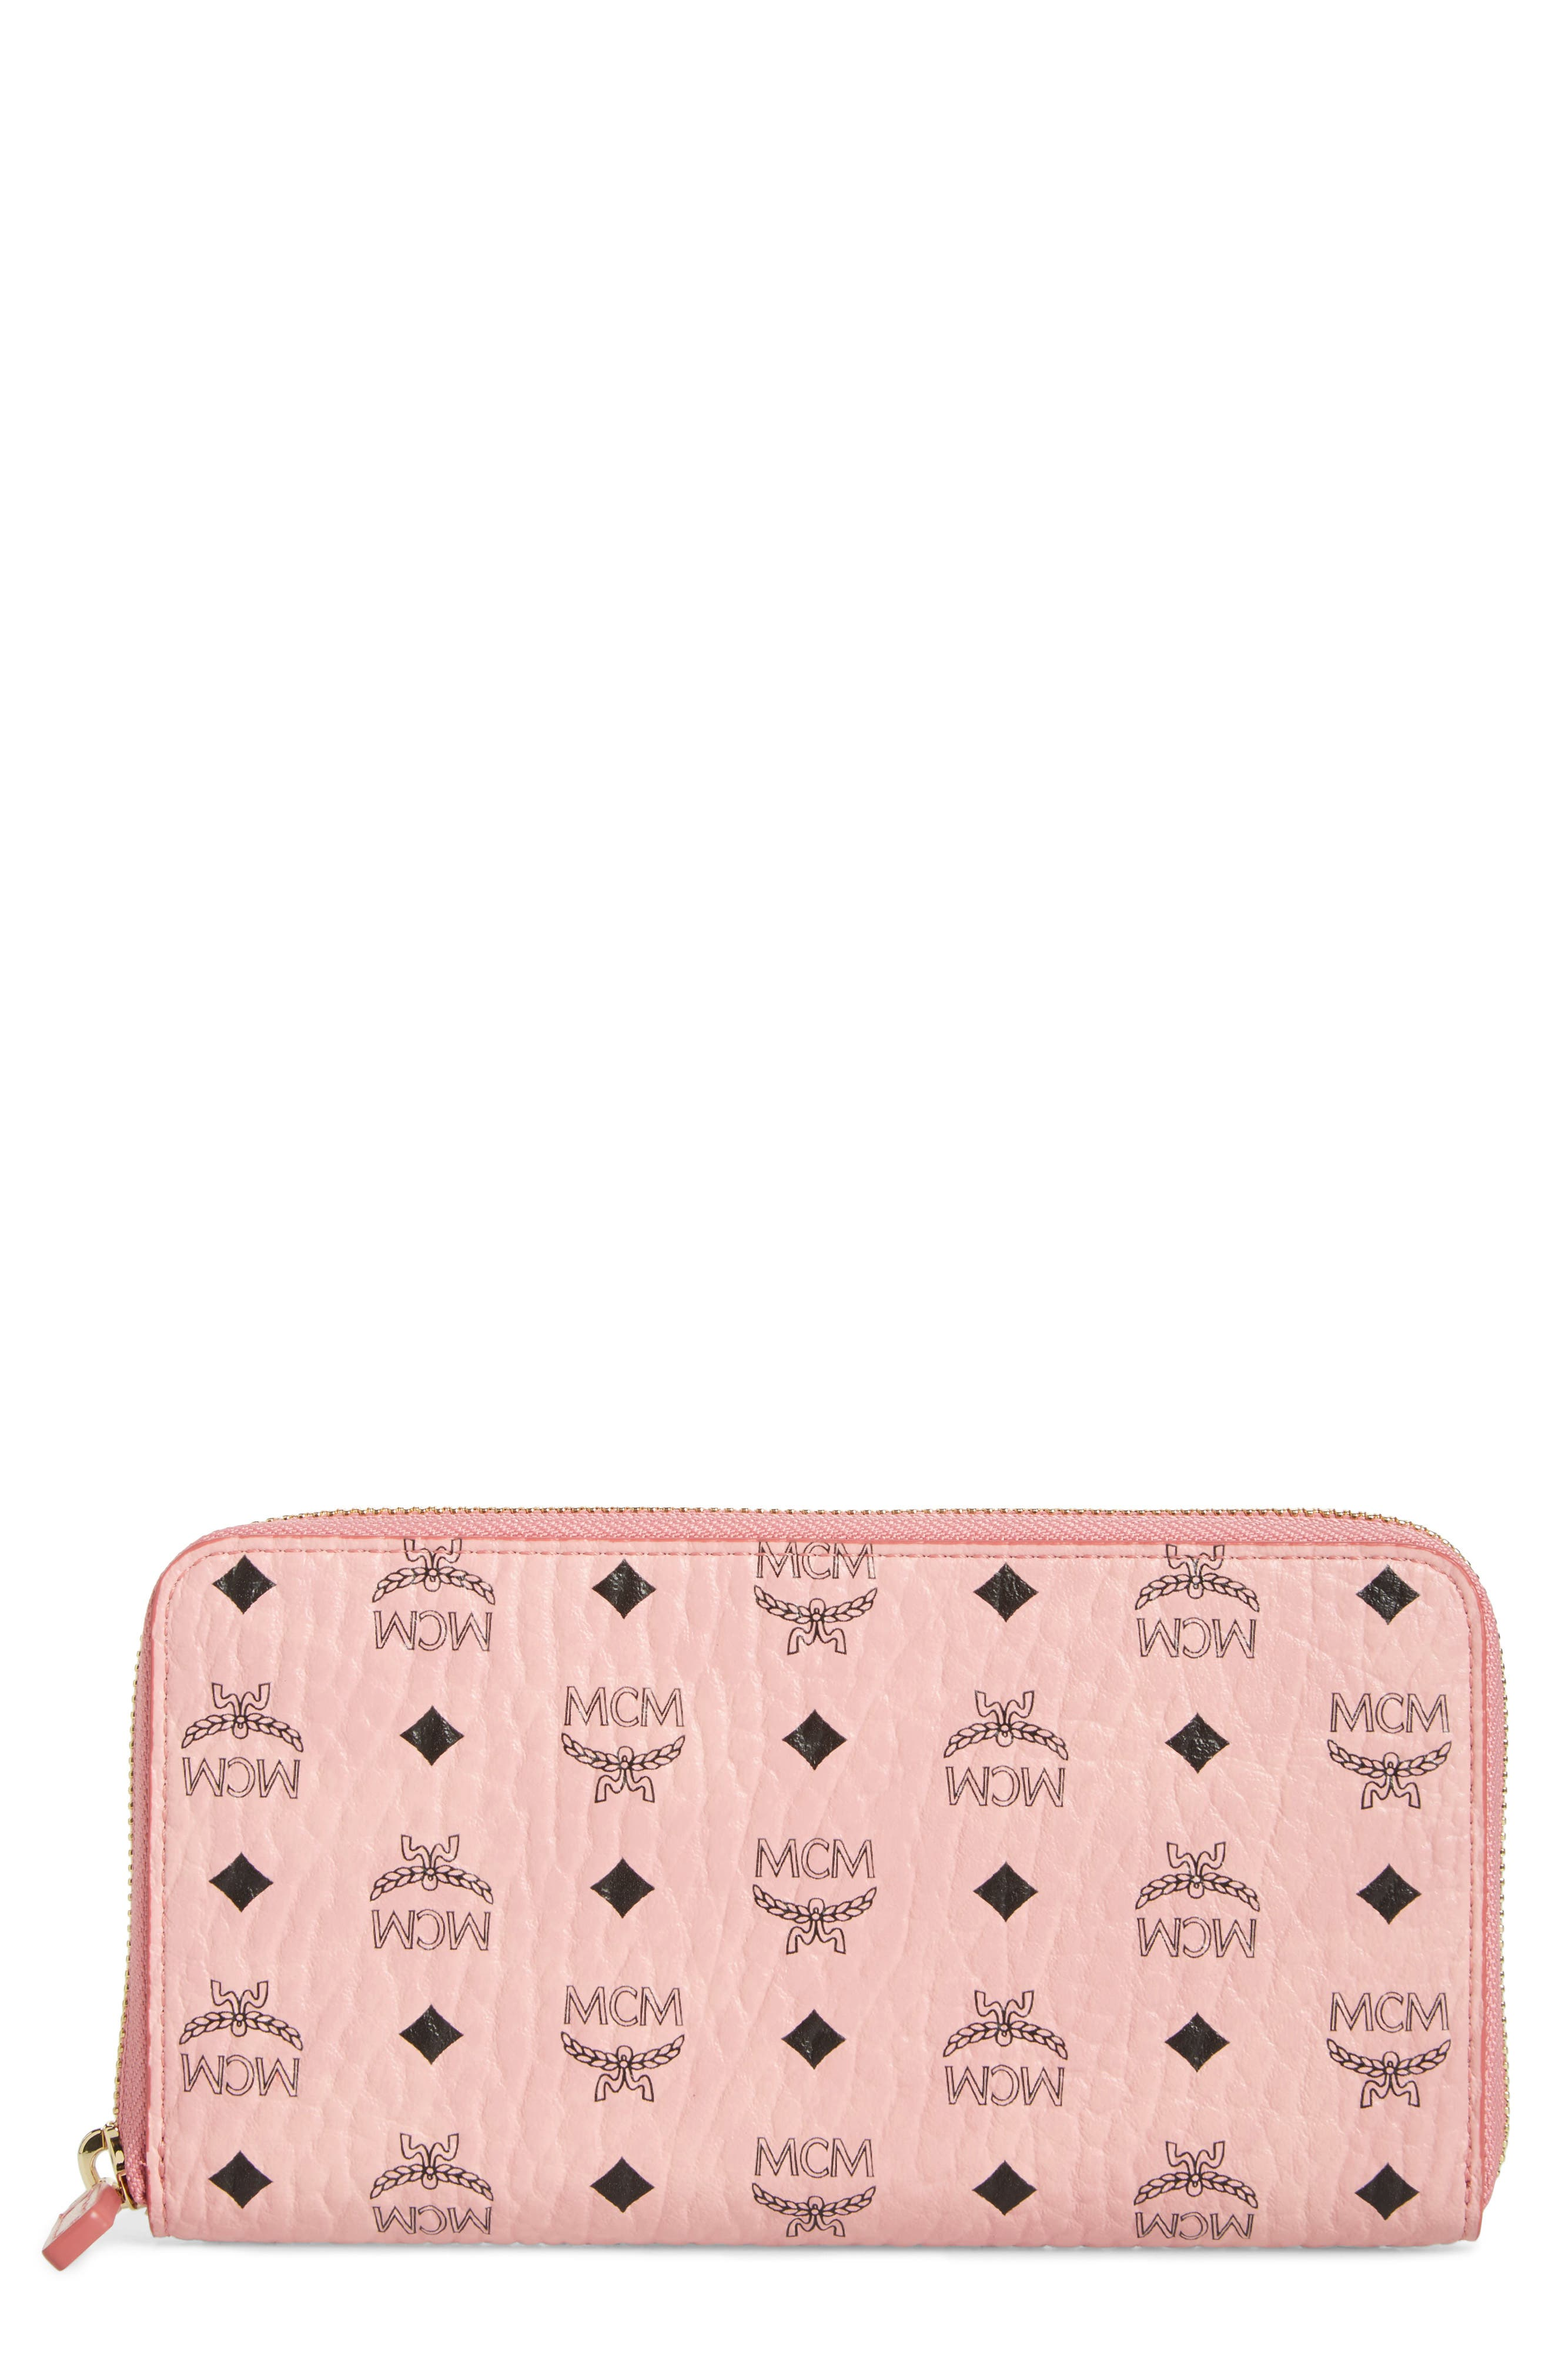 Visetos Coated Canvas Zip Wallet,                         Main,                         color, Soft Pink